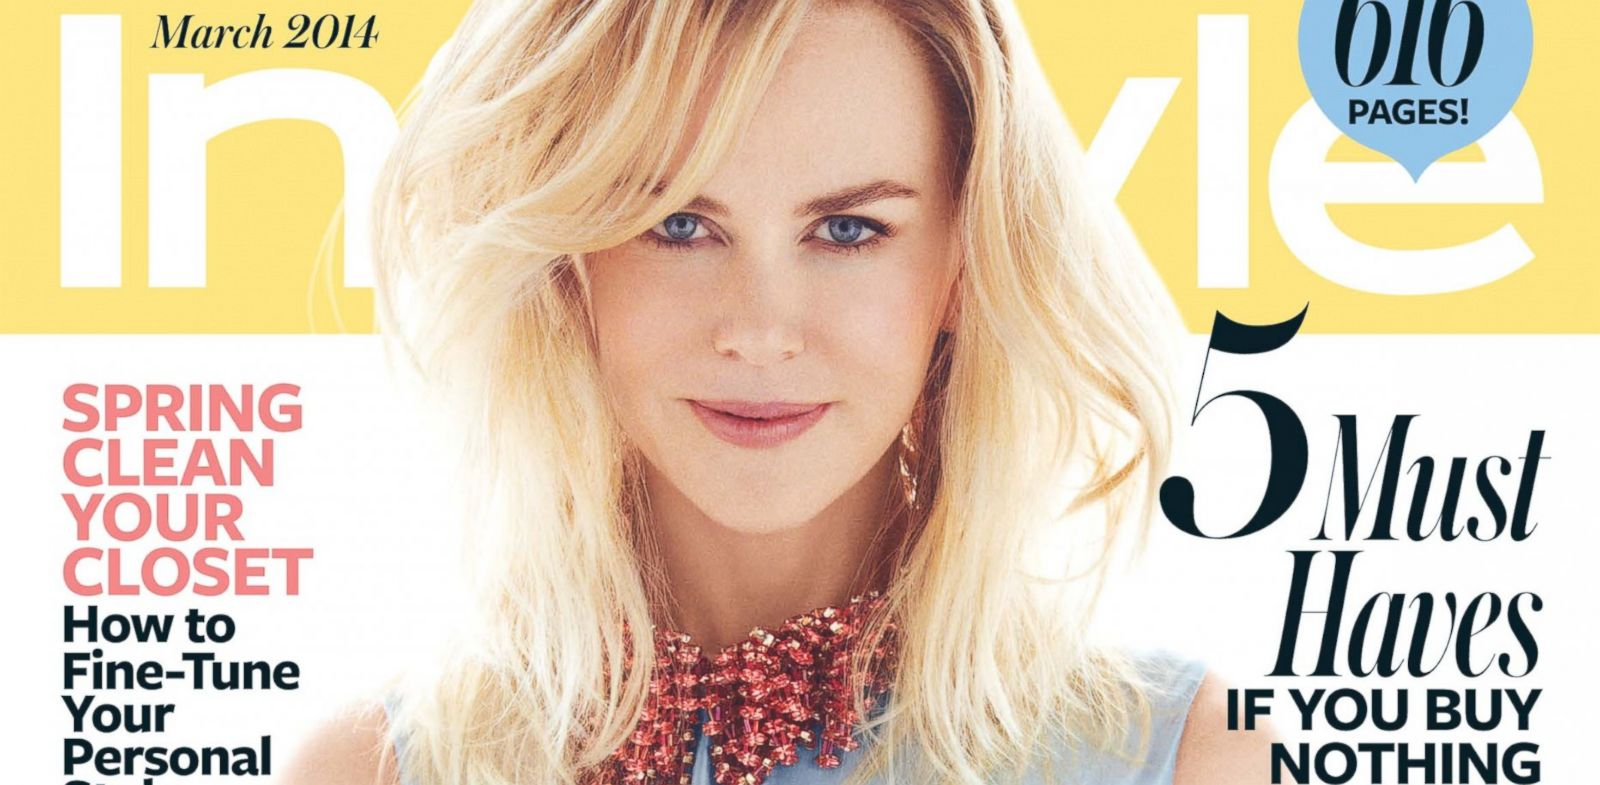 PHOTO: The March 2014 cover of InStyle, featuring Nicole Kidman.